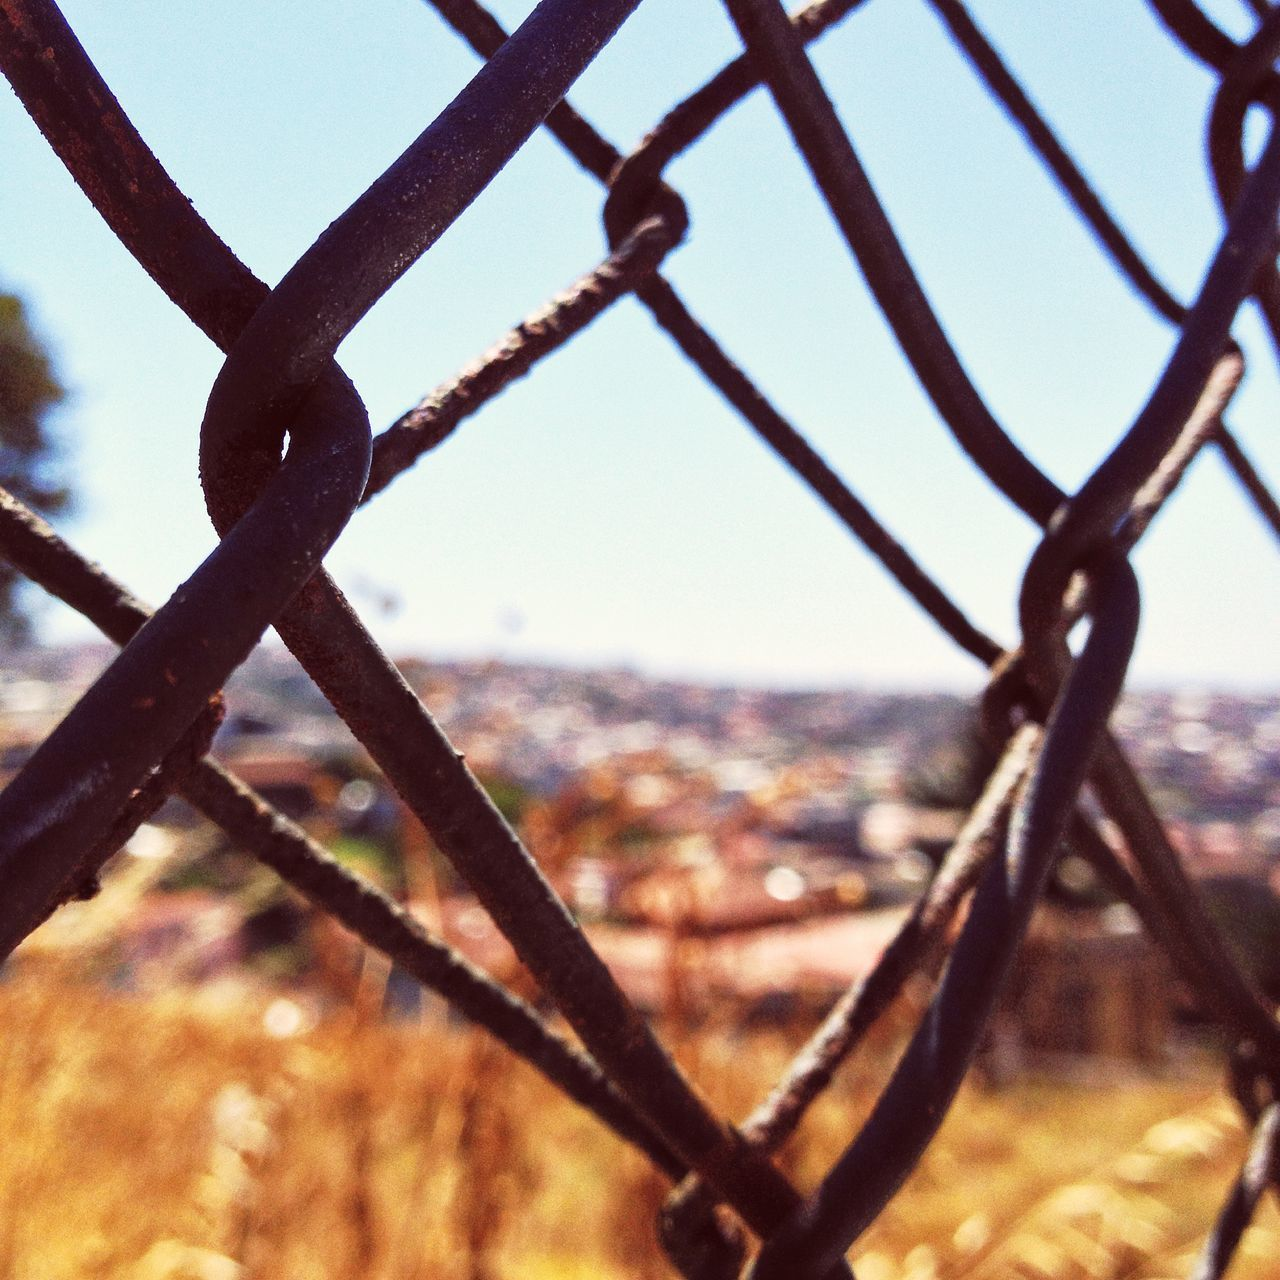 Through the Valparaiso Fence Adapted To The City Barrier Close-up Day Fence Focus On Foreground Metal Nature No People Outdoors Protection Safety Security Sky